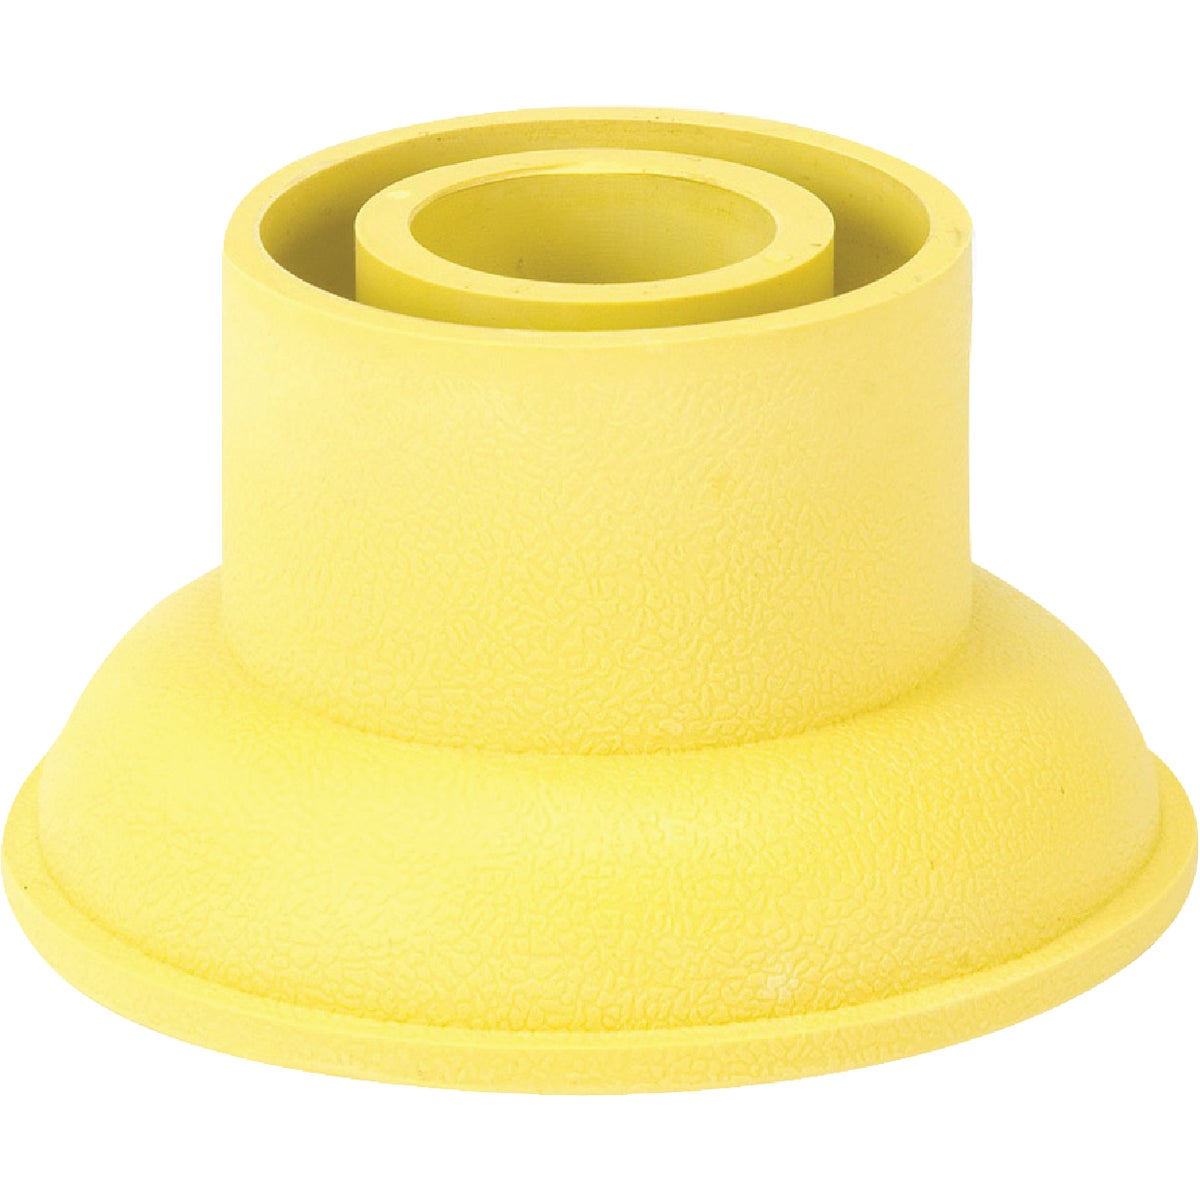 DRAIN UNCLOG ATTACHMENT - 9193400 by Shop Vac Corp